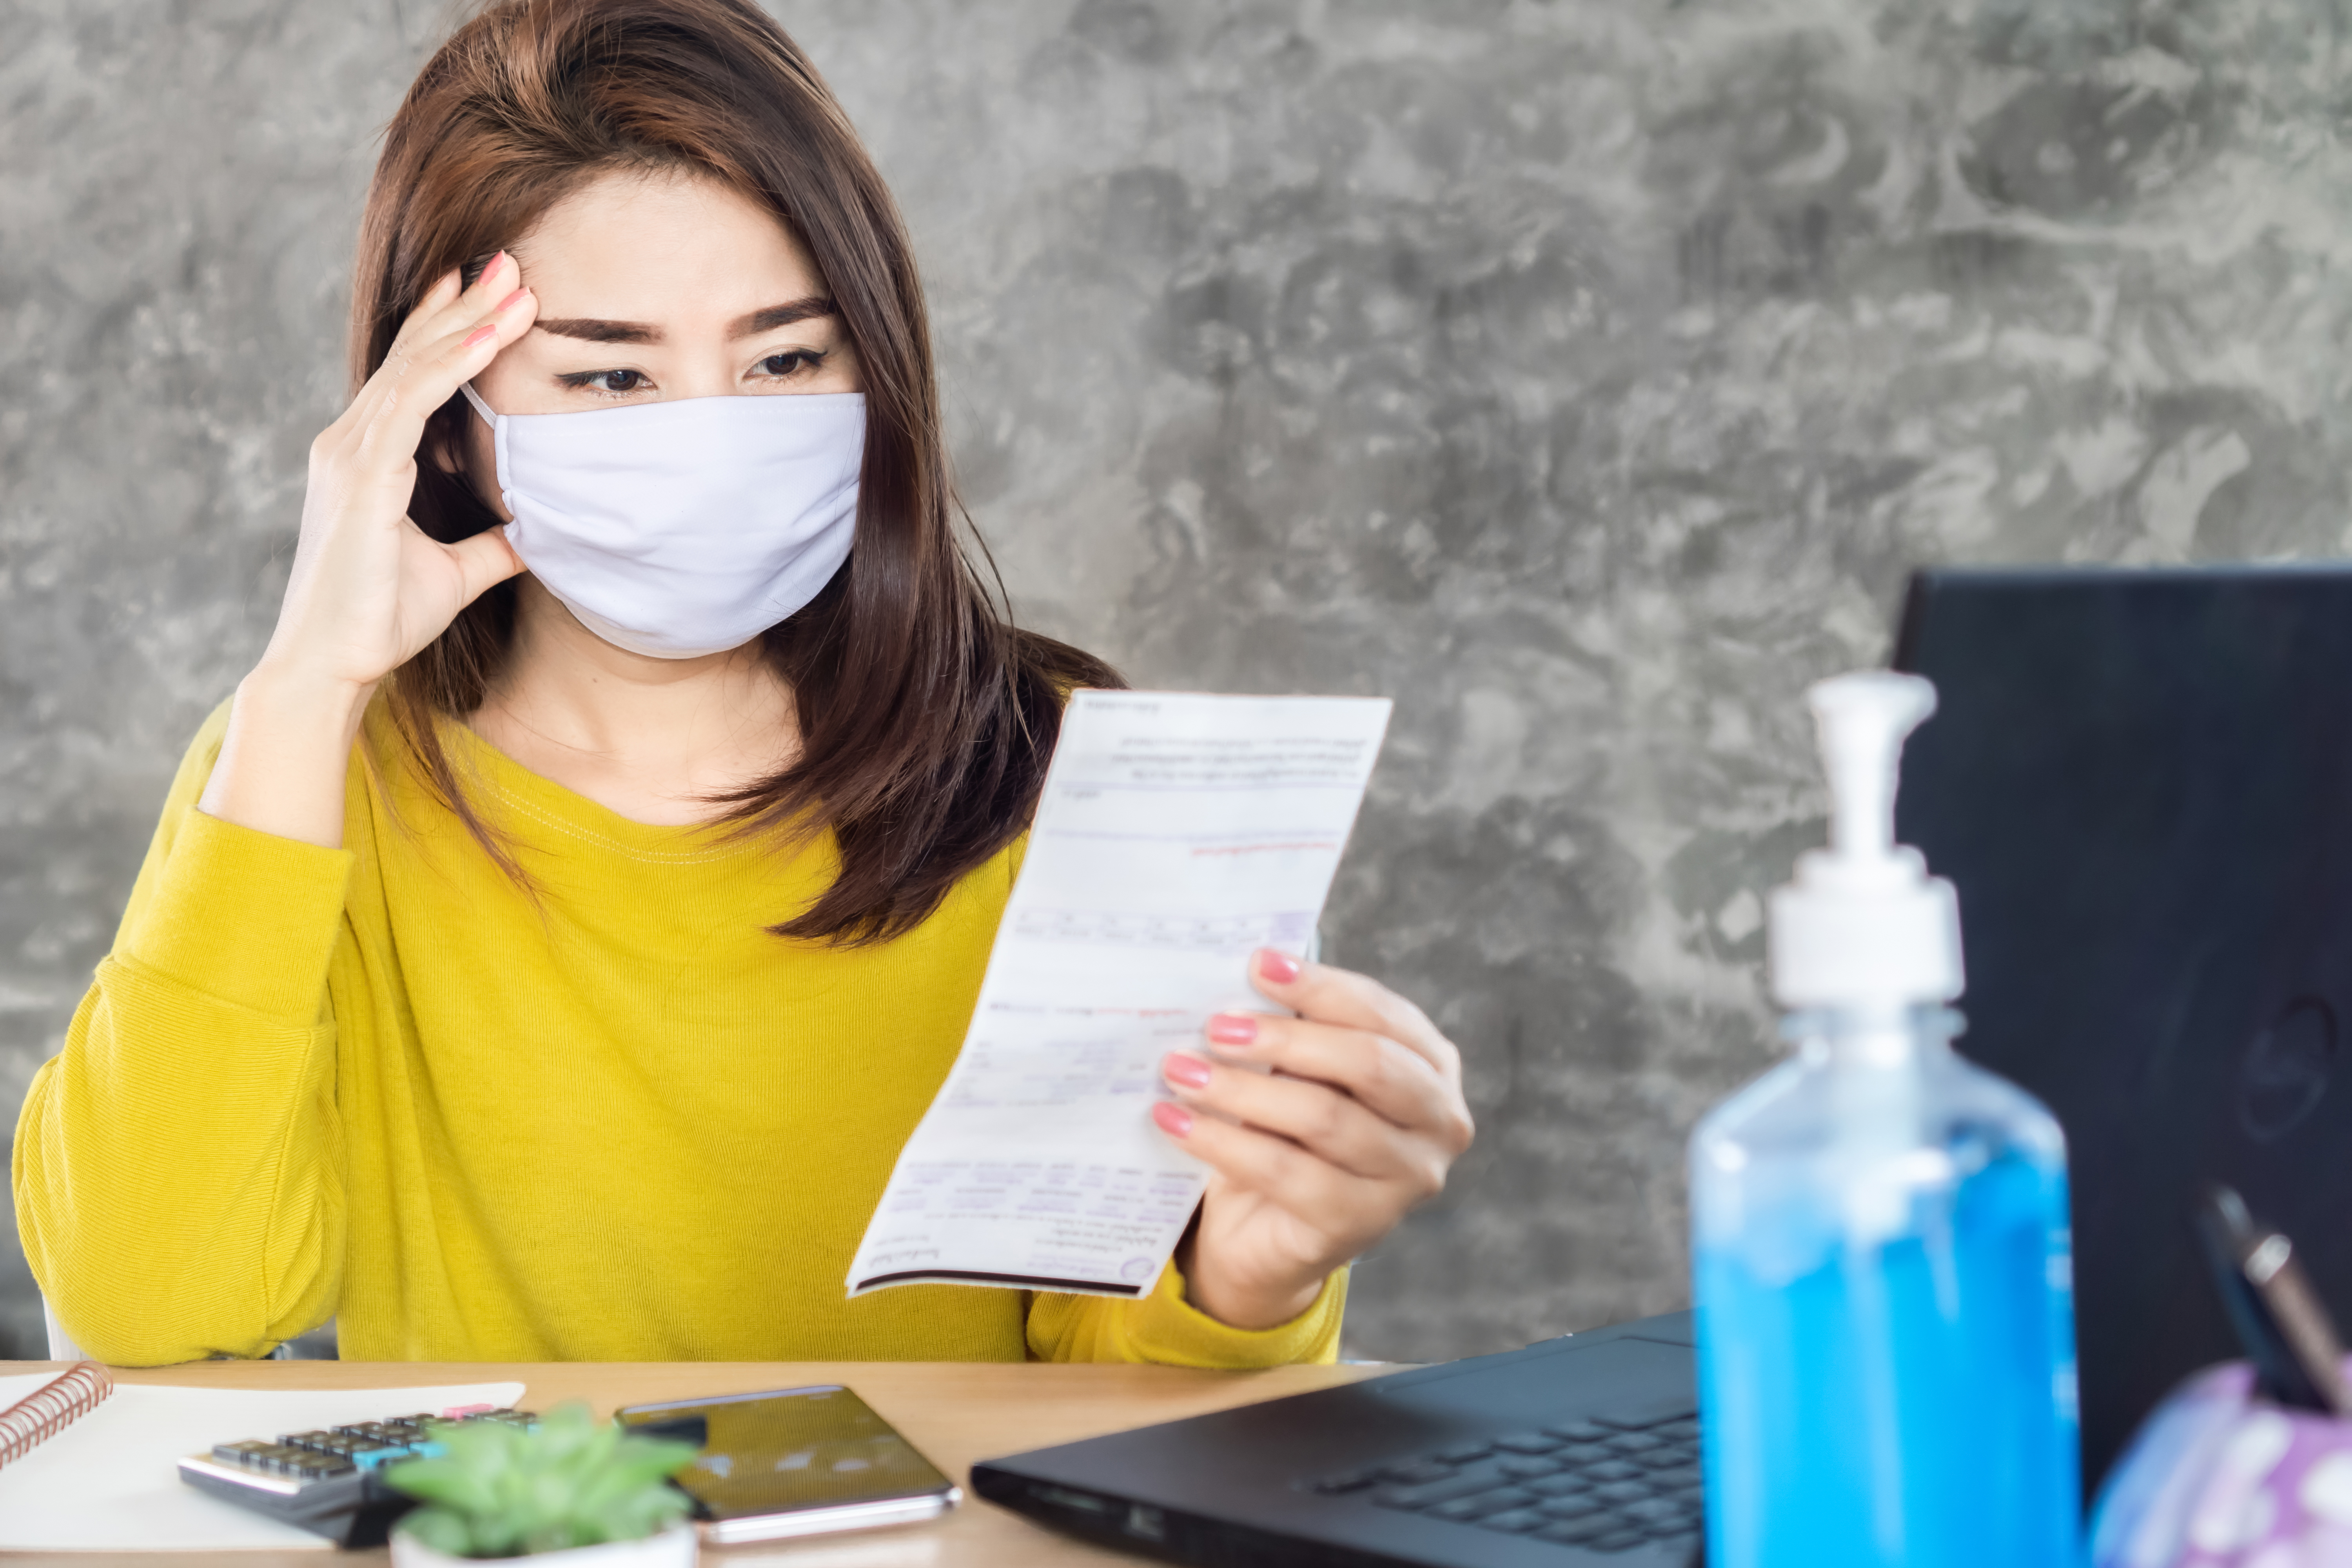 Woman holding a bill having financial problems during COVID-19 pandemic